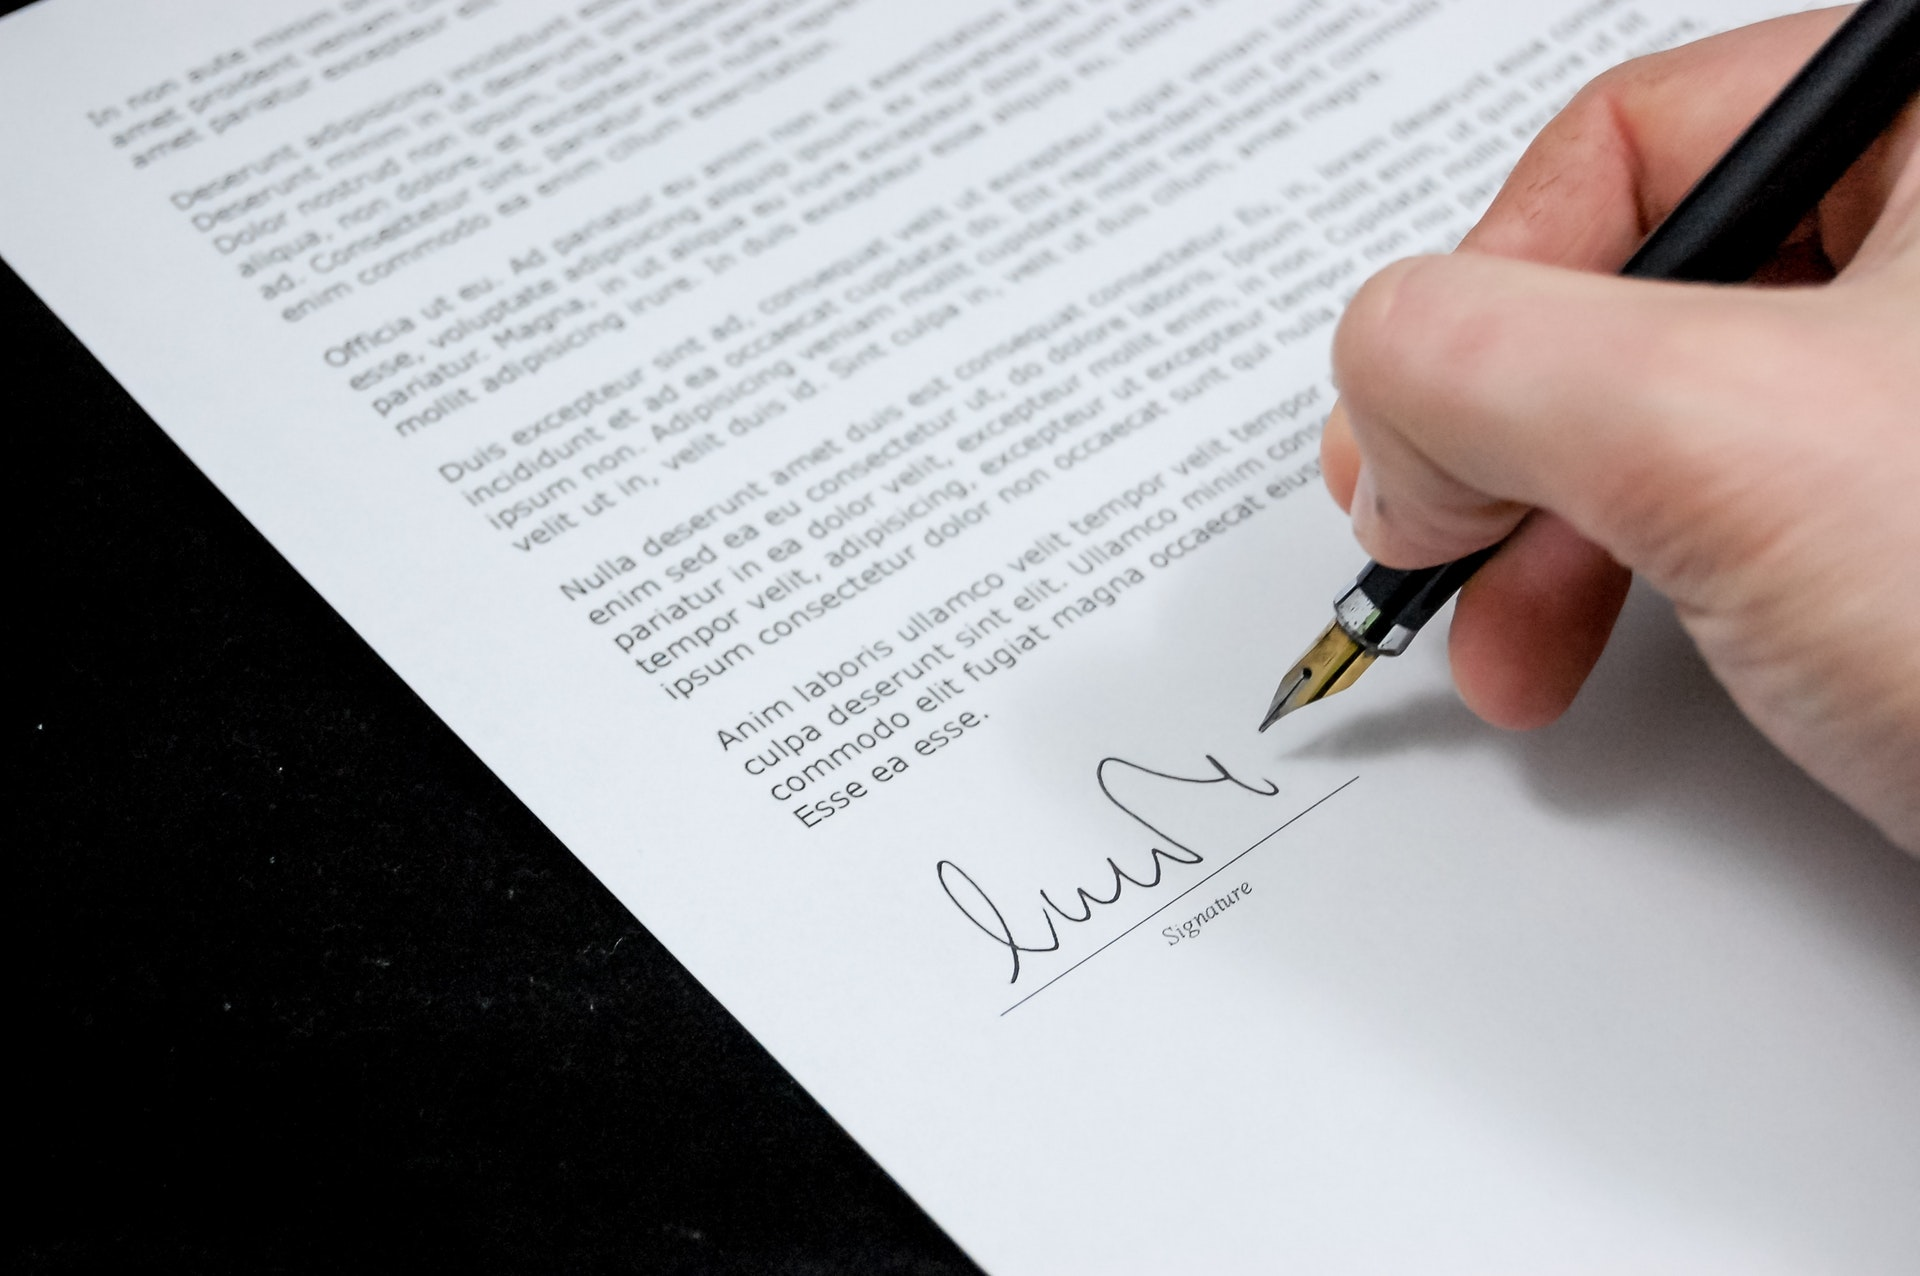 Homeowner writing signature at the bottom of a contract.